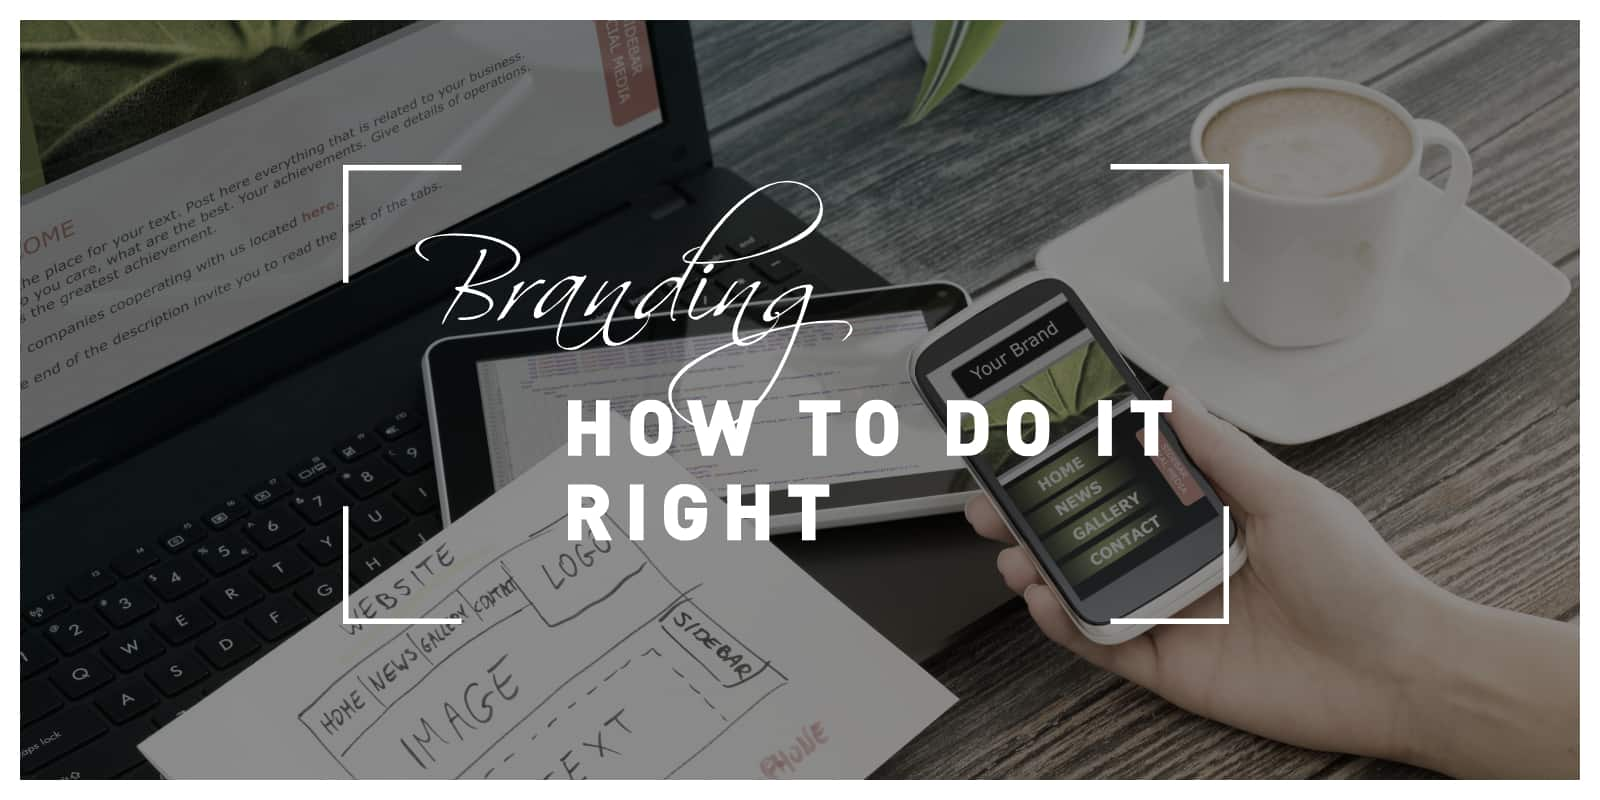 Branding - How to do it right